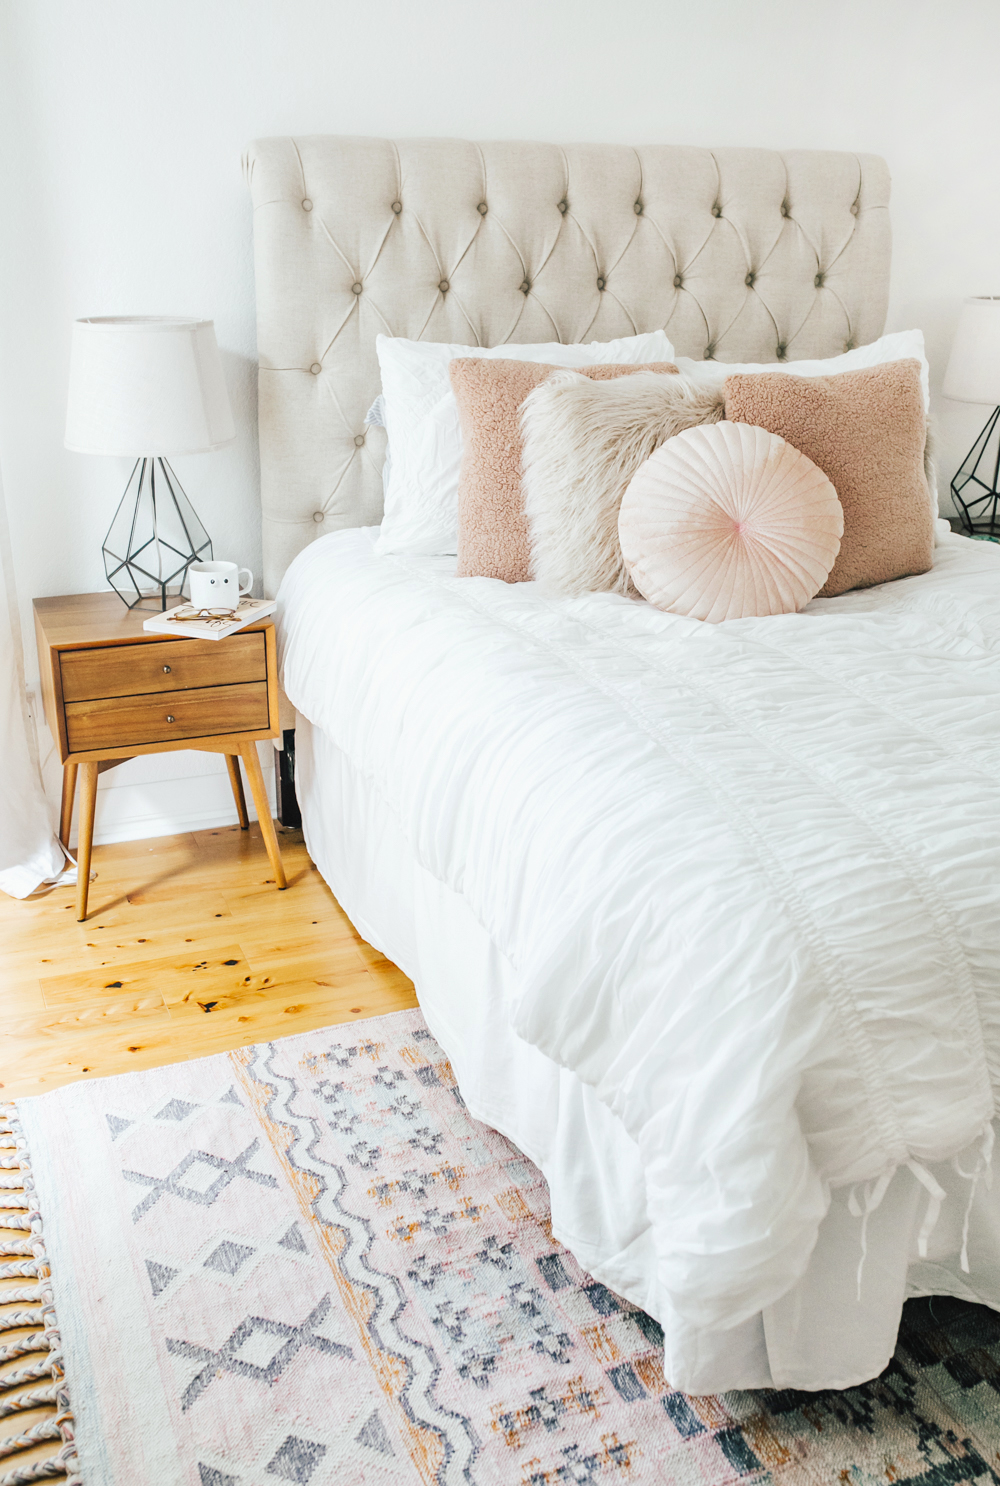 livvyland-blog-olivia-watson-bedroom-bedding-decor-decoration-blush-white-interiors-urban-outfitters-5